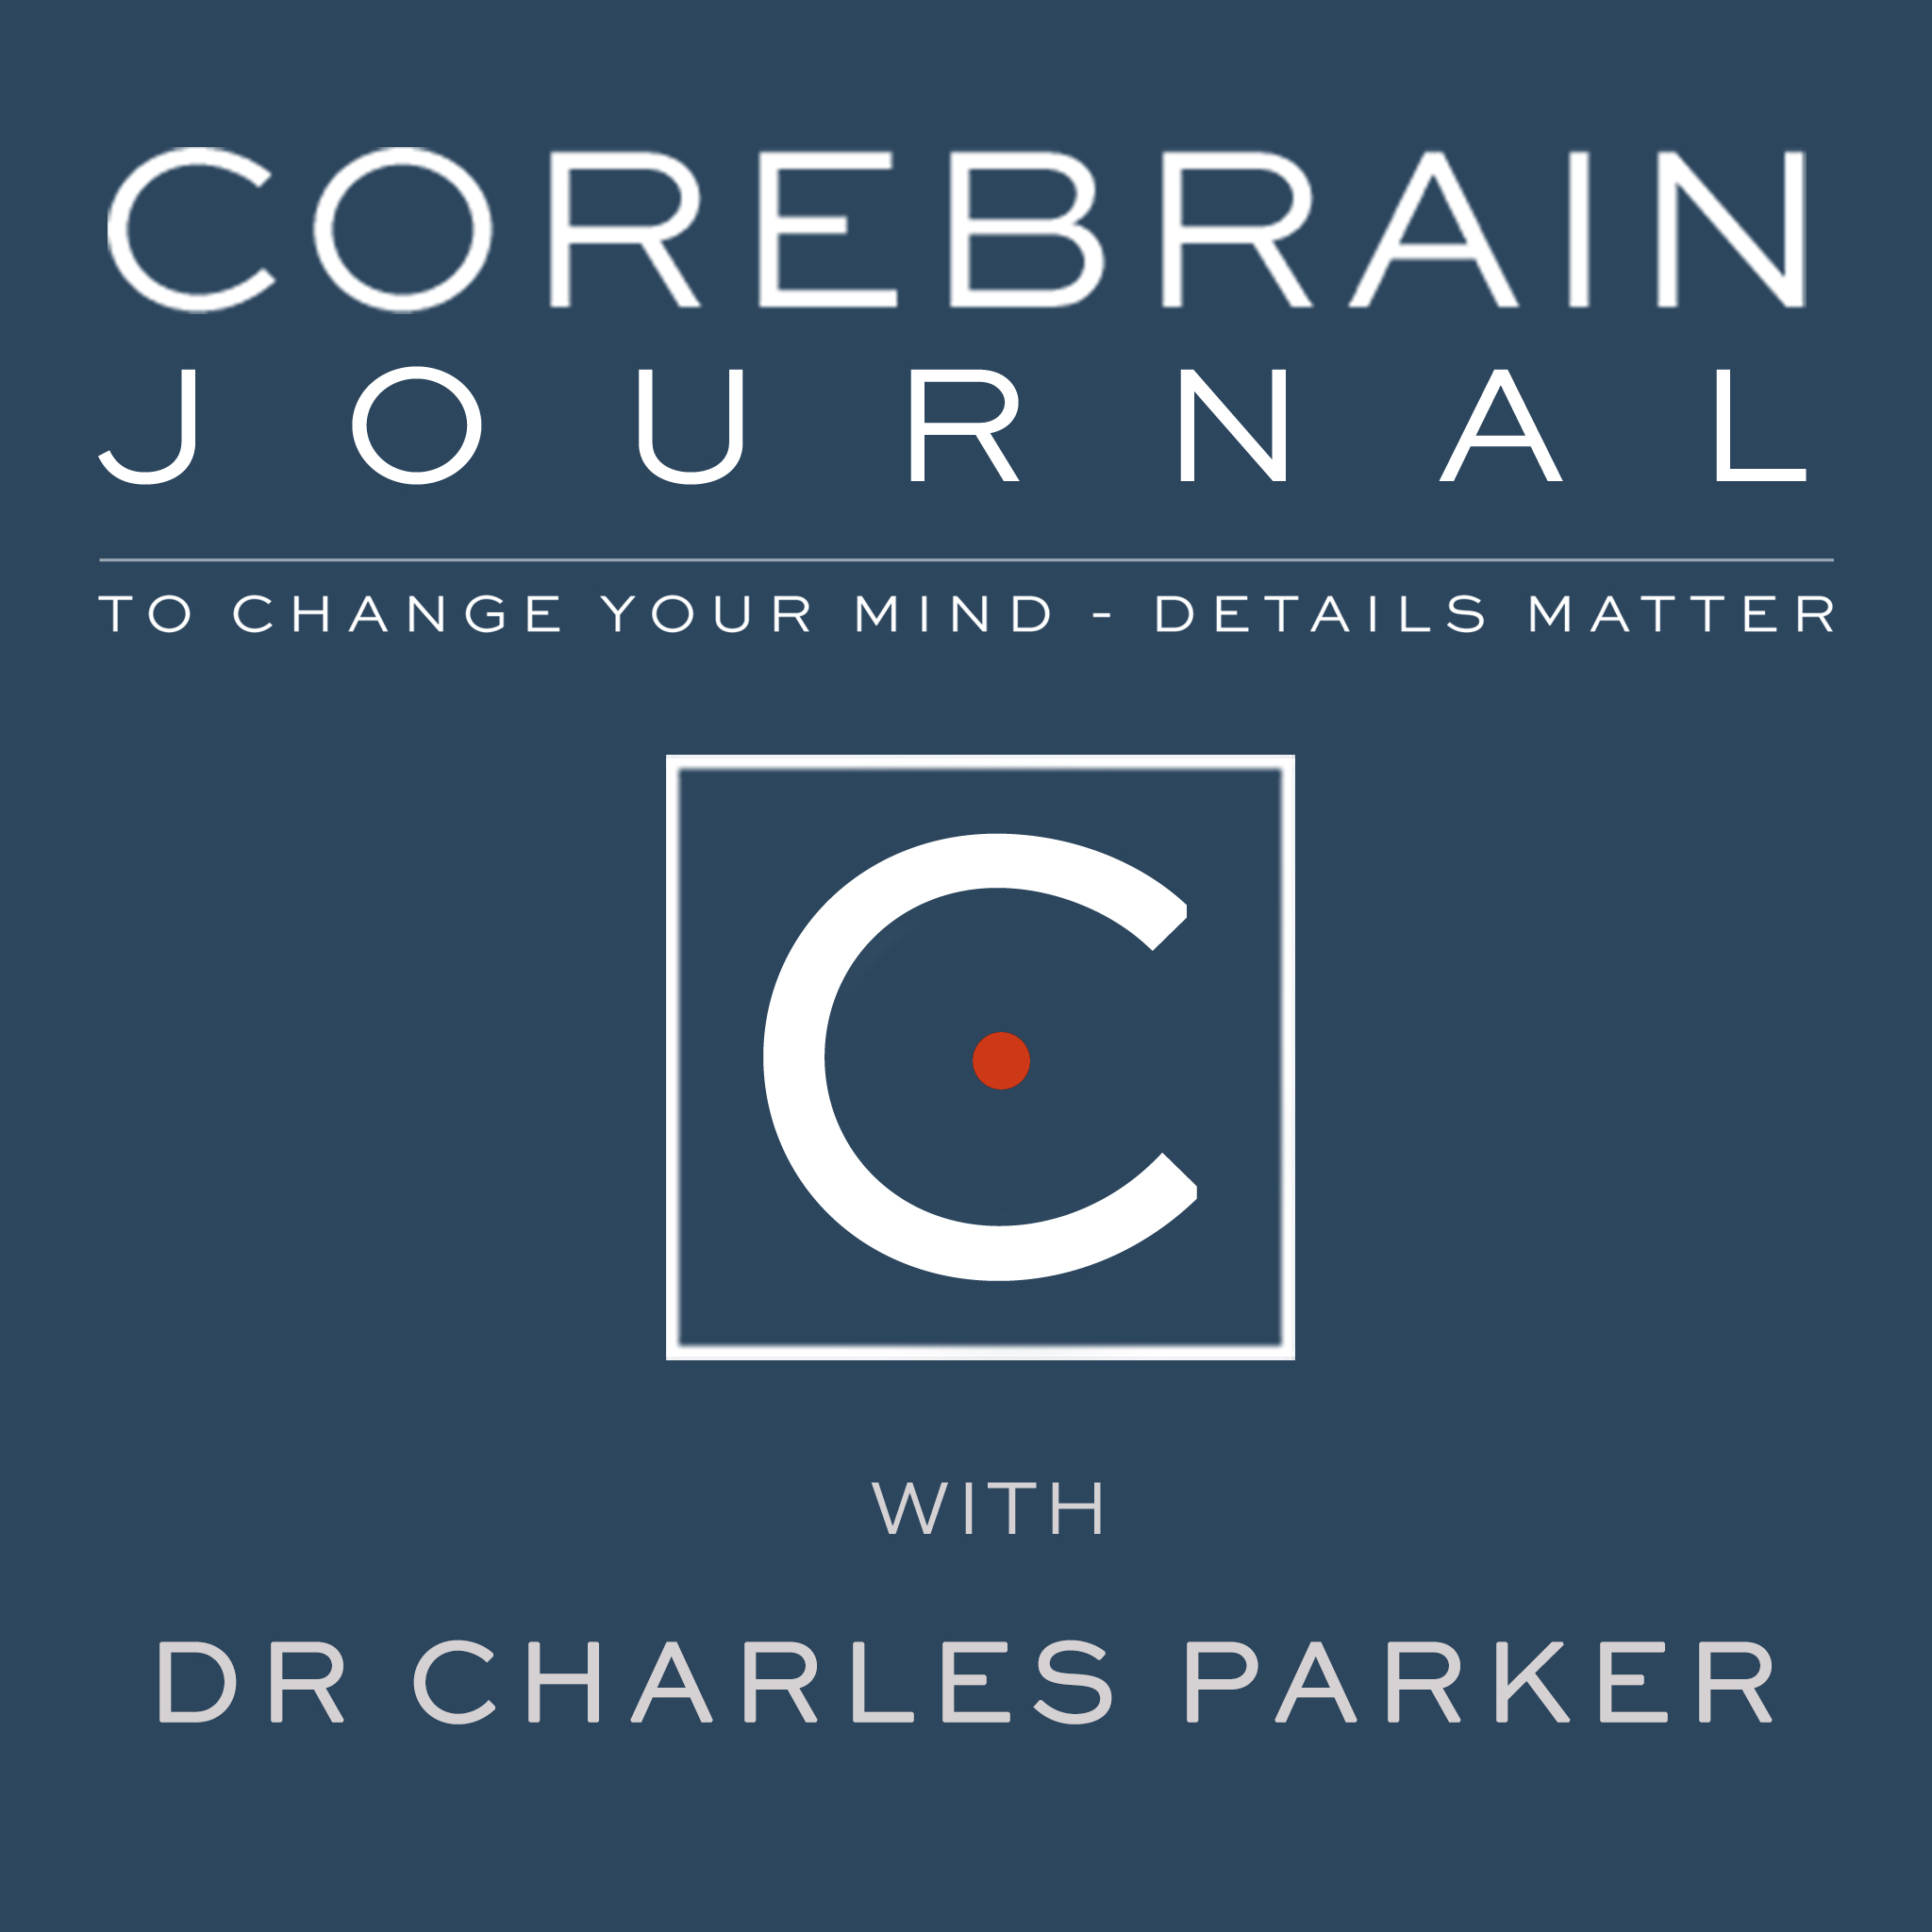 corebrain journal